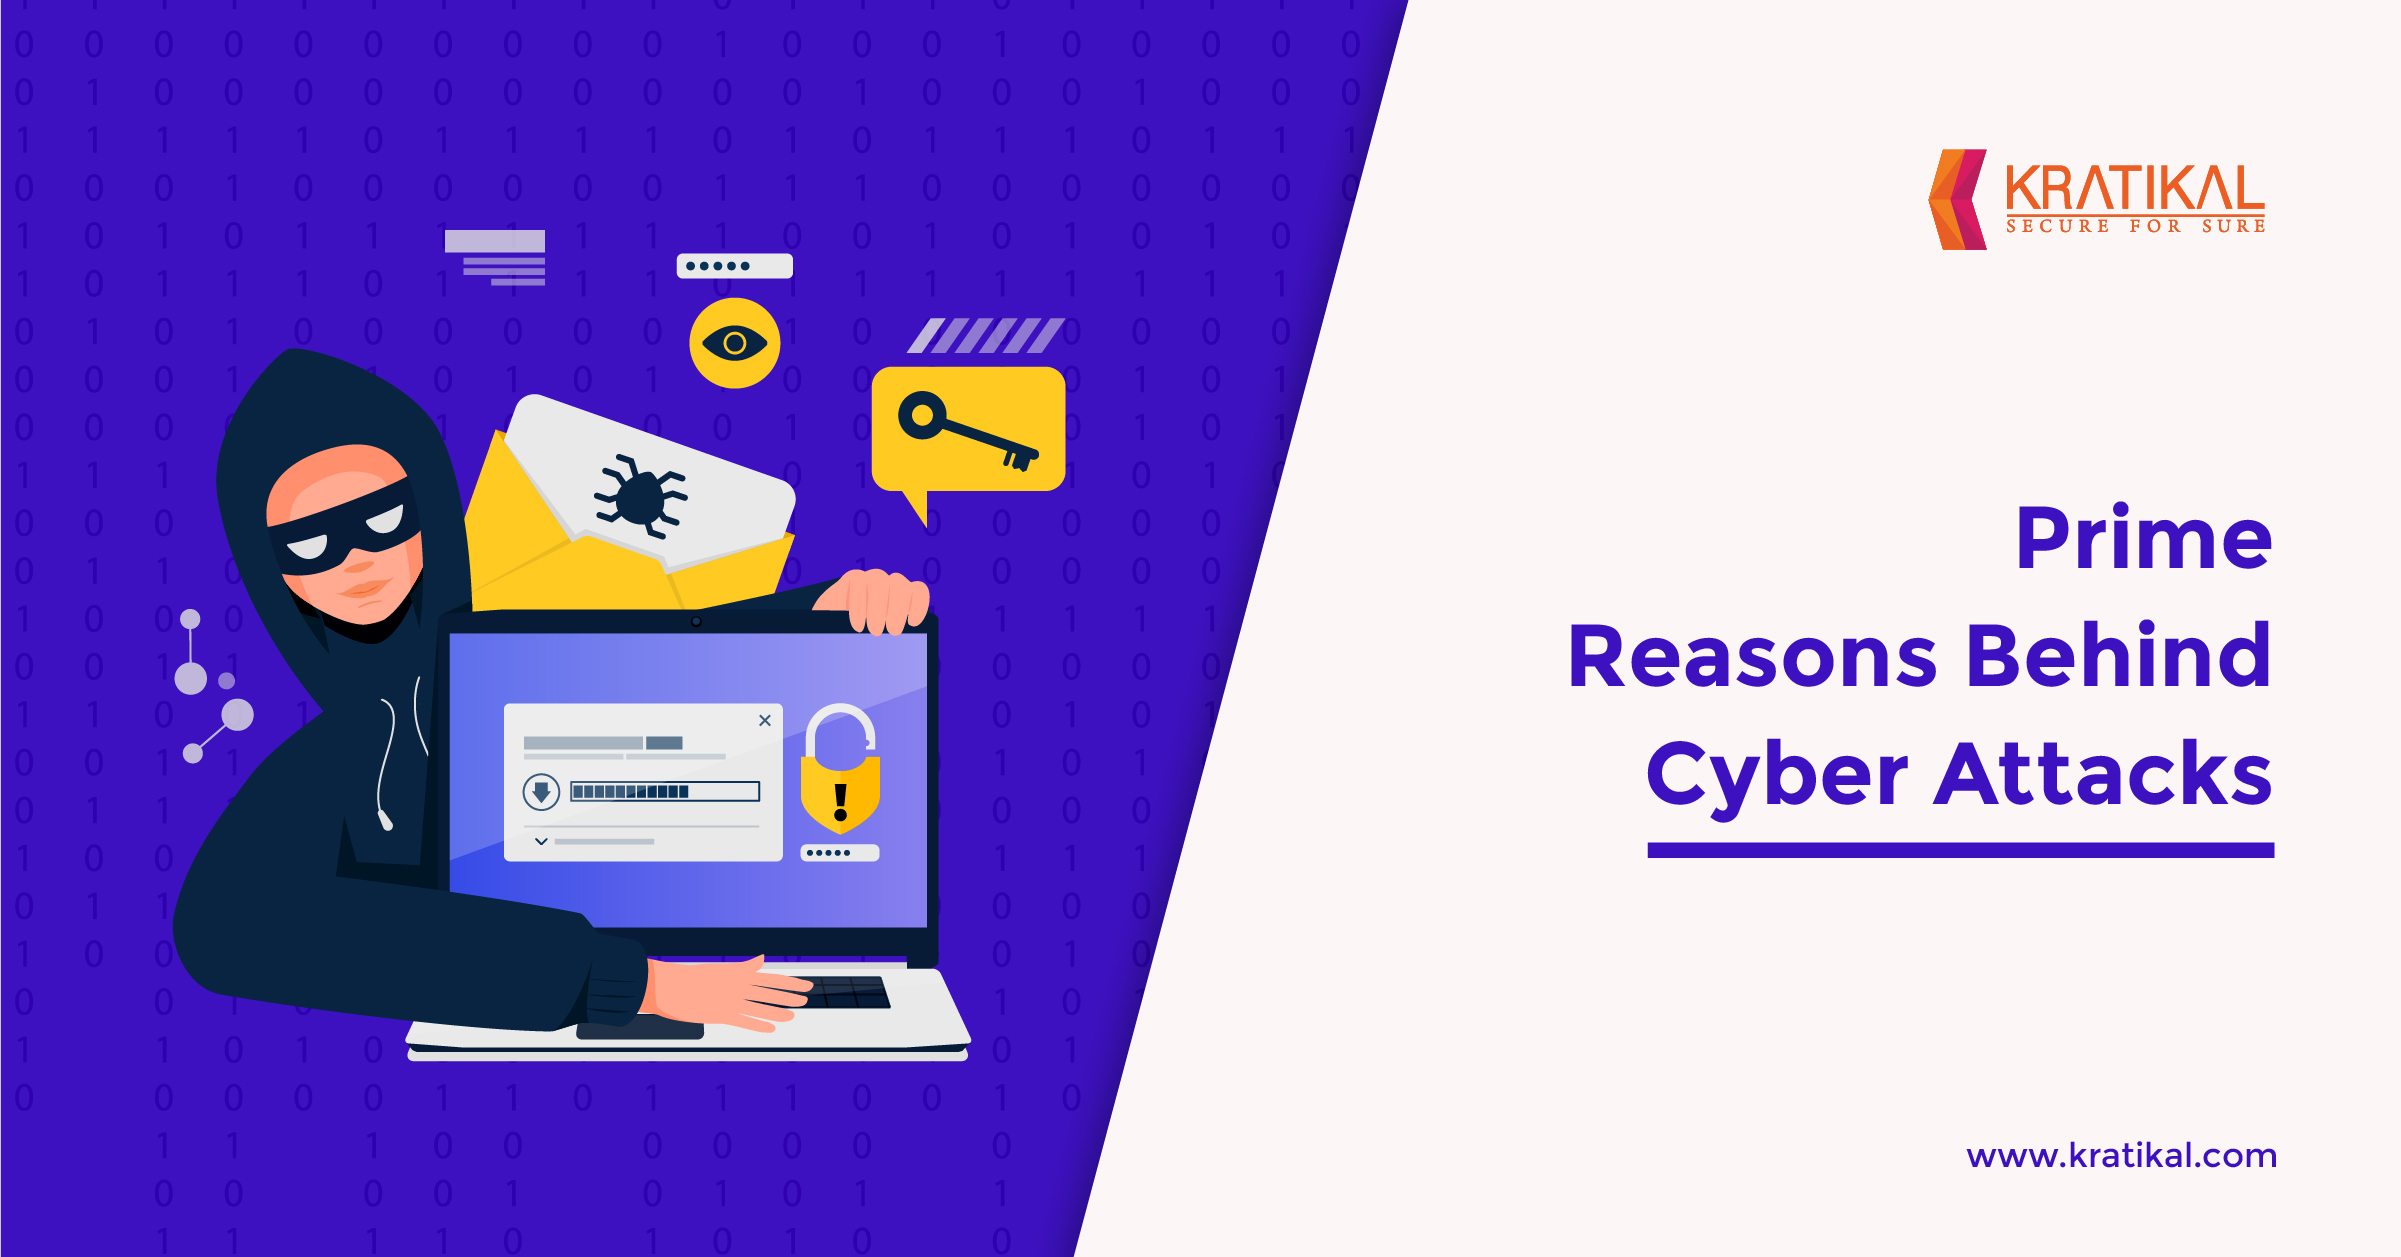 Prime Reasons Behind Cyber Attacks